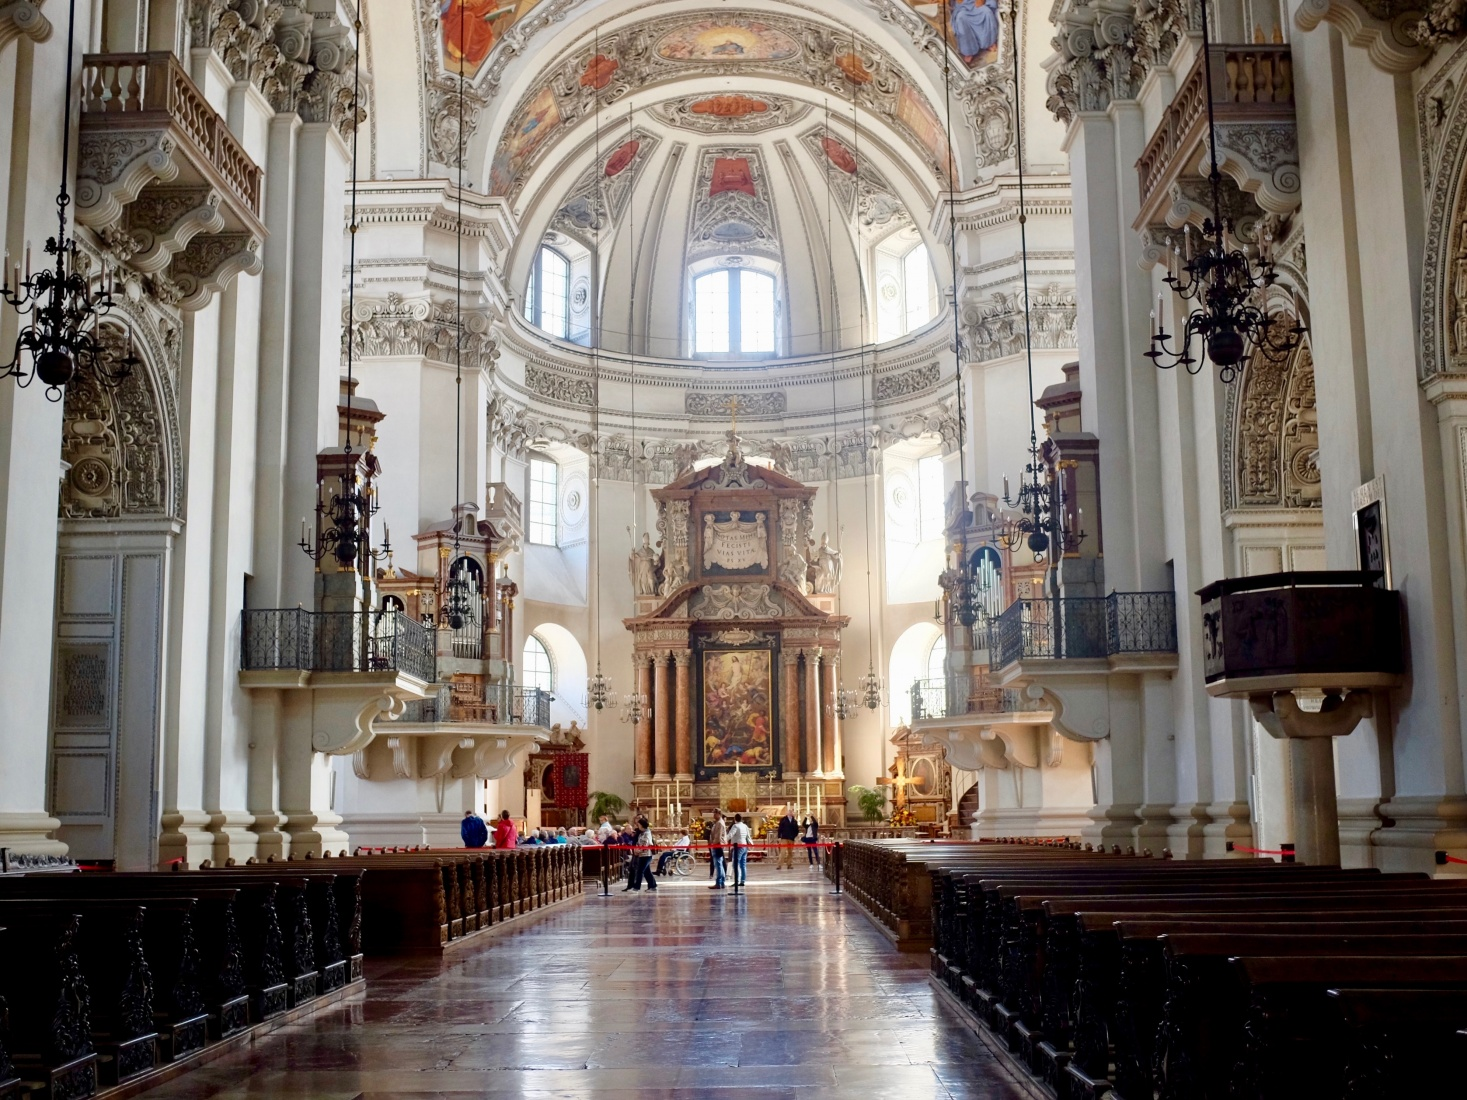 Interior of the 17th-century baroque cathedral in Salzburg, Austria.